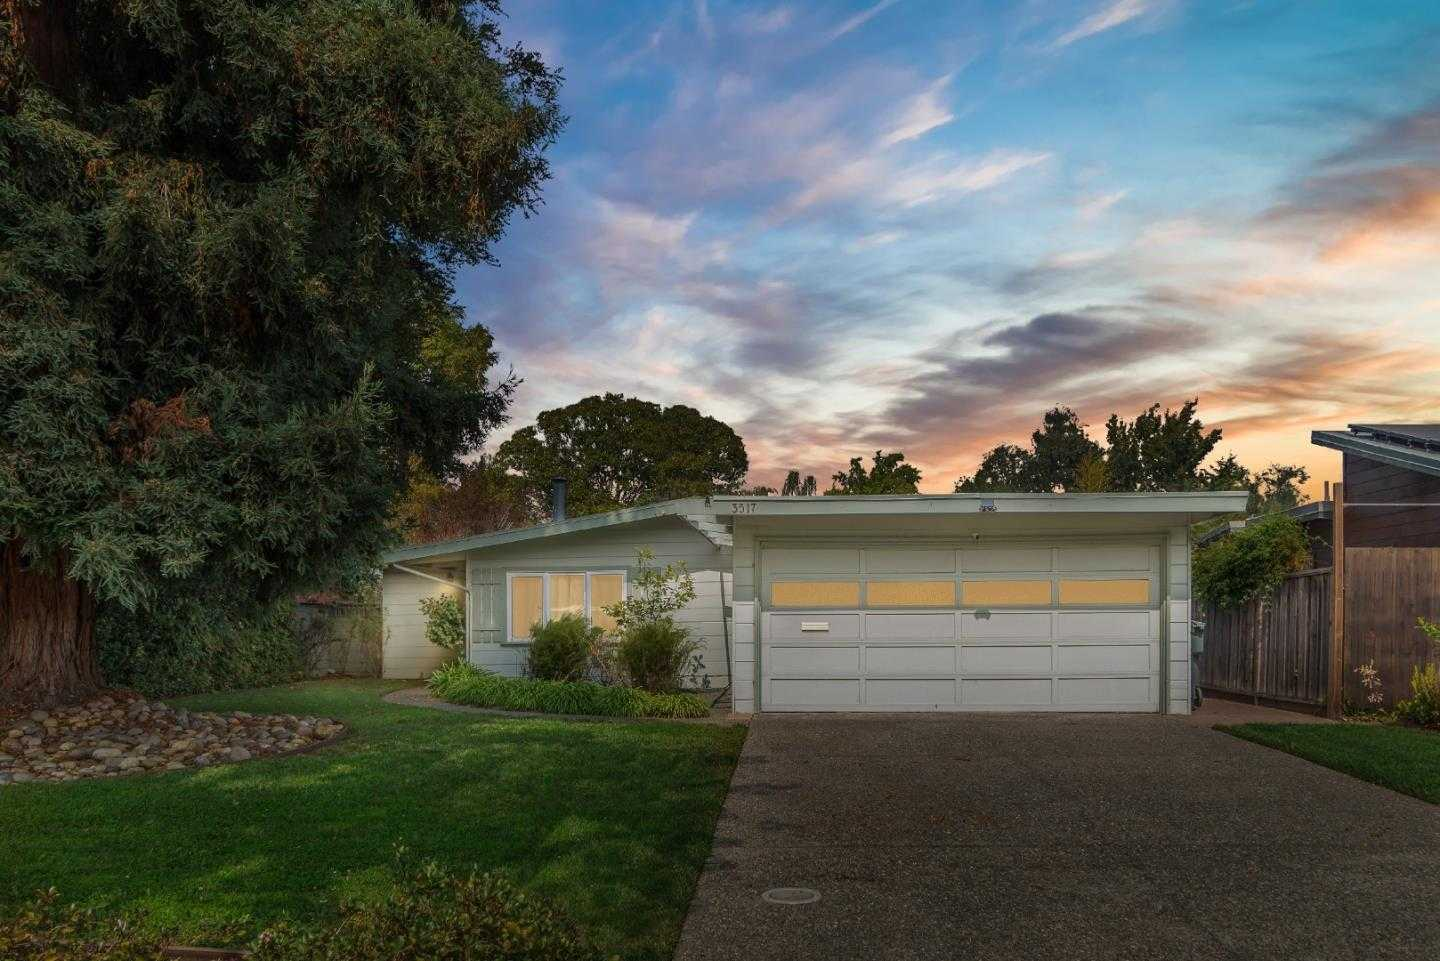 $2,149,000 - 3Br/1Ba -  for Sale in Palo Alto